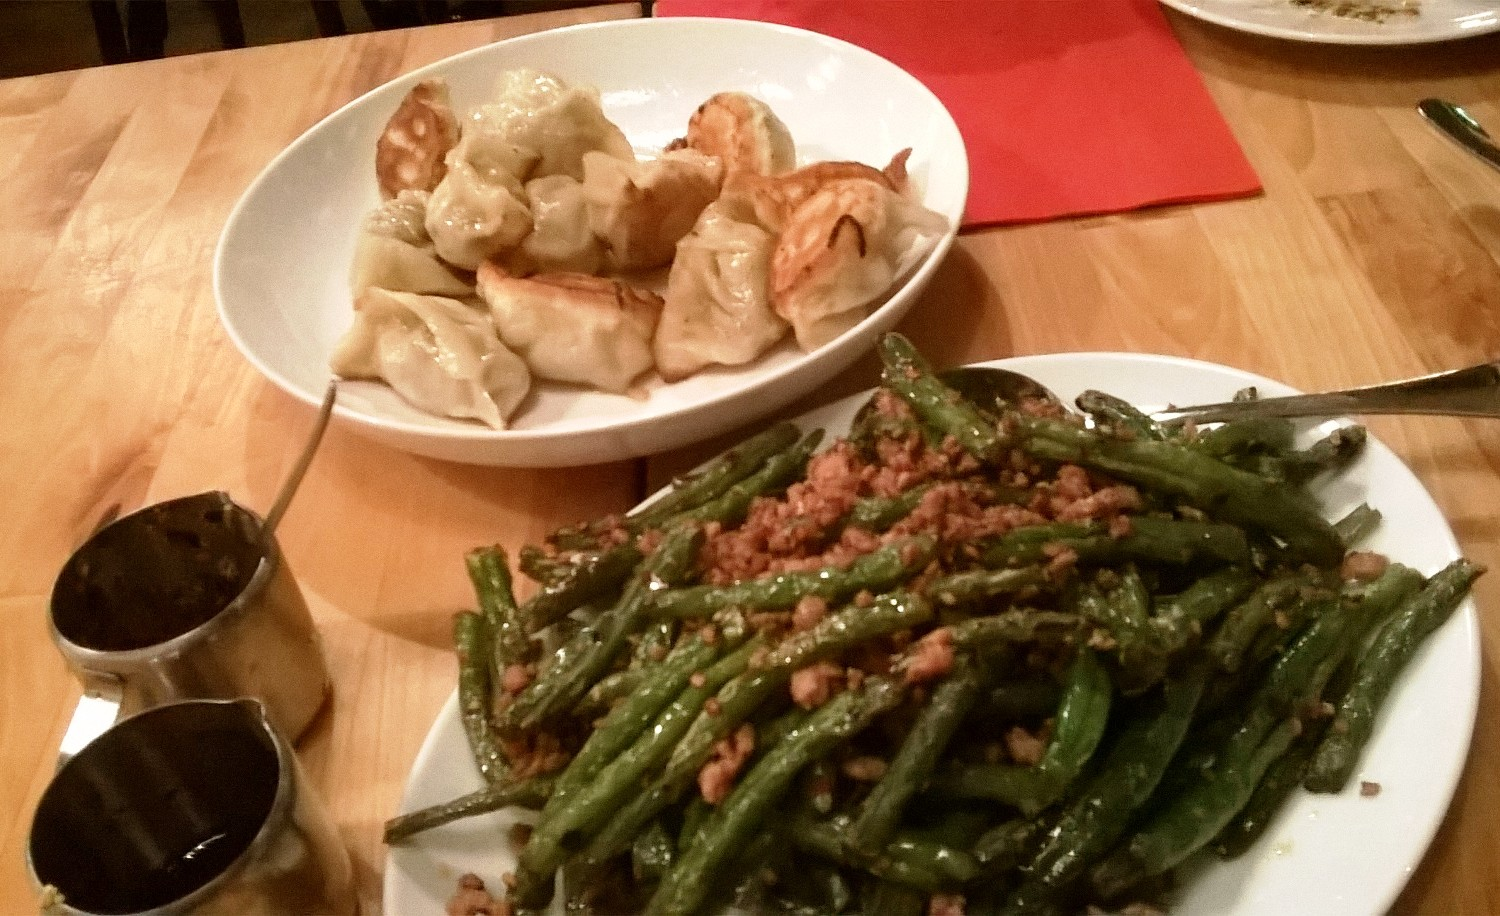 Beijing Bao - Green beans and dumplings